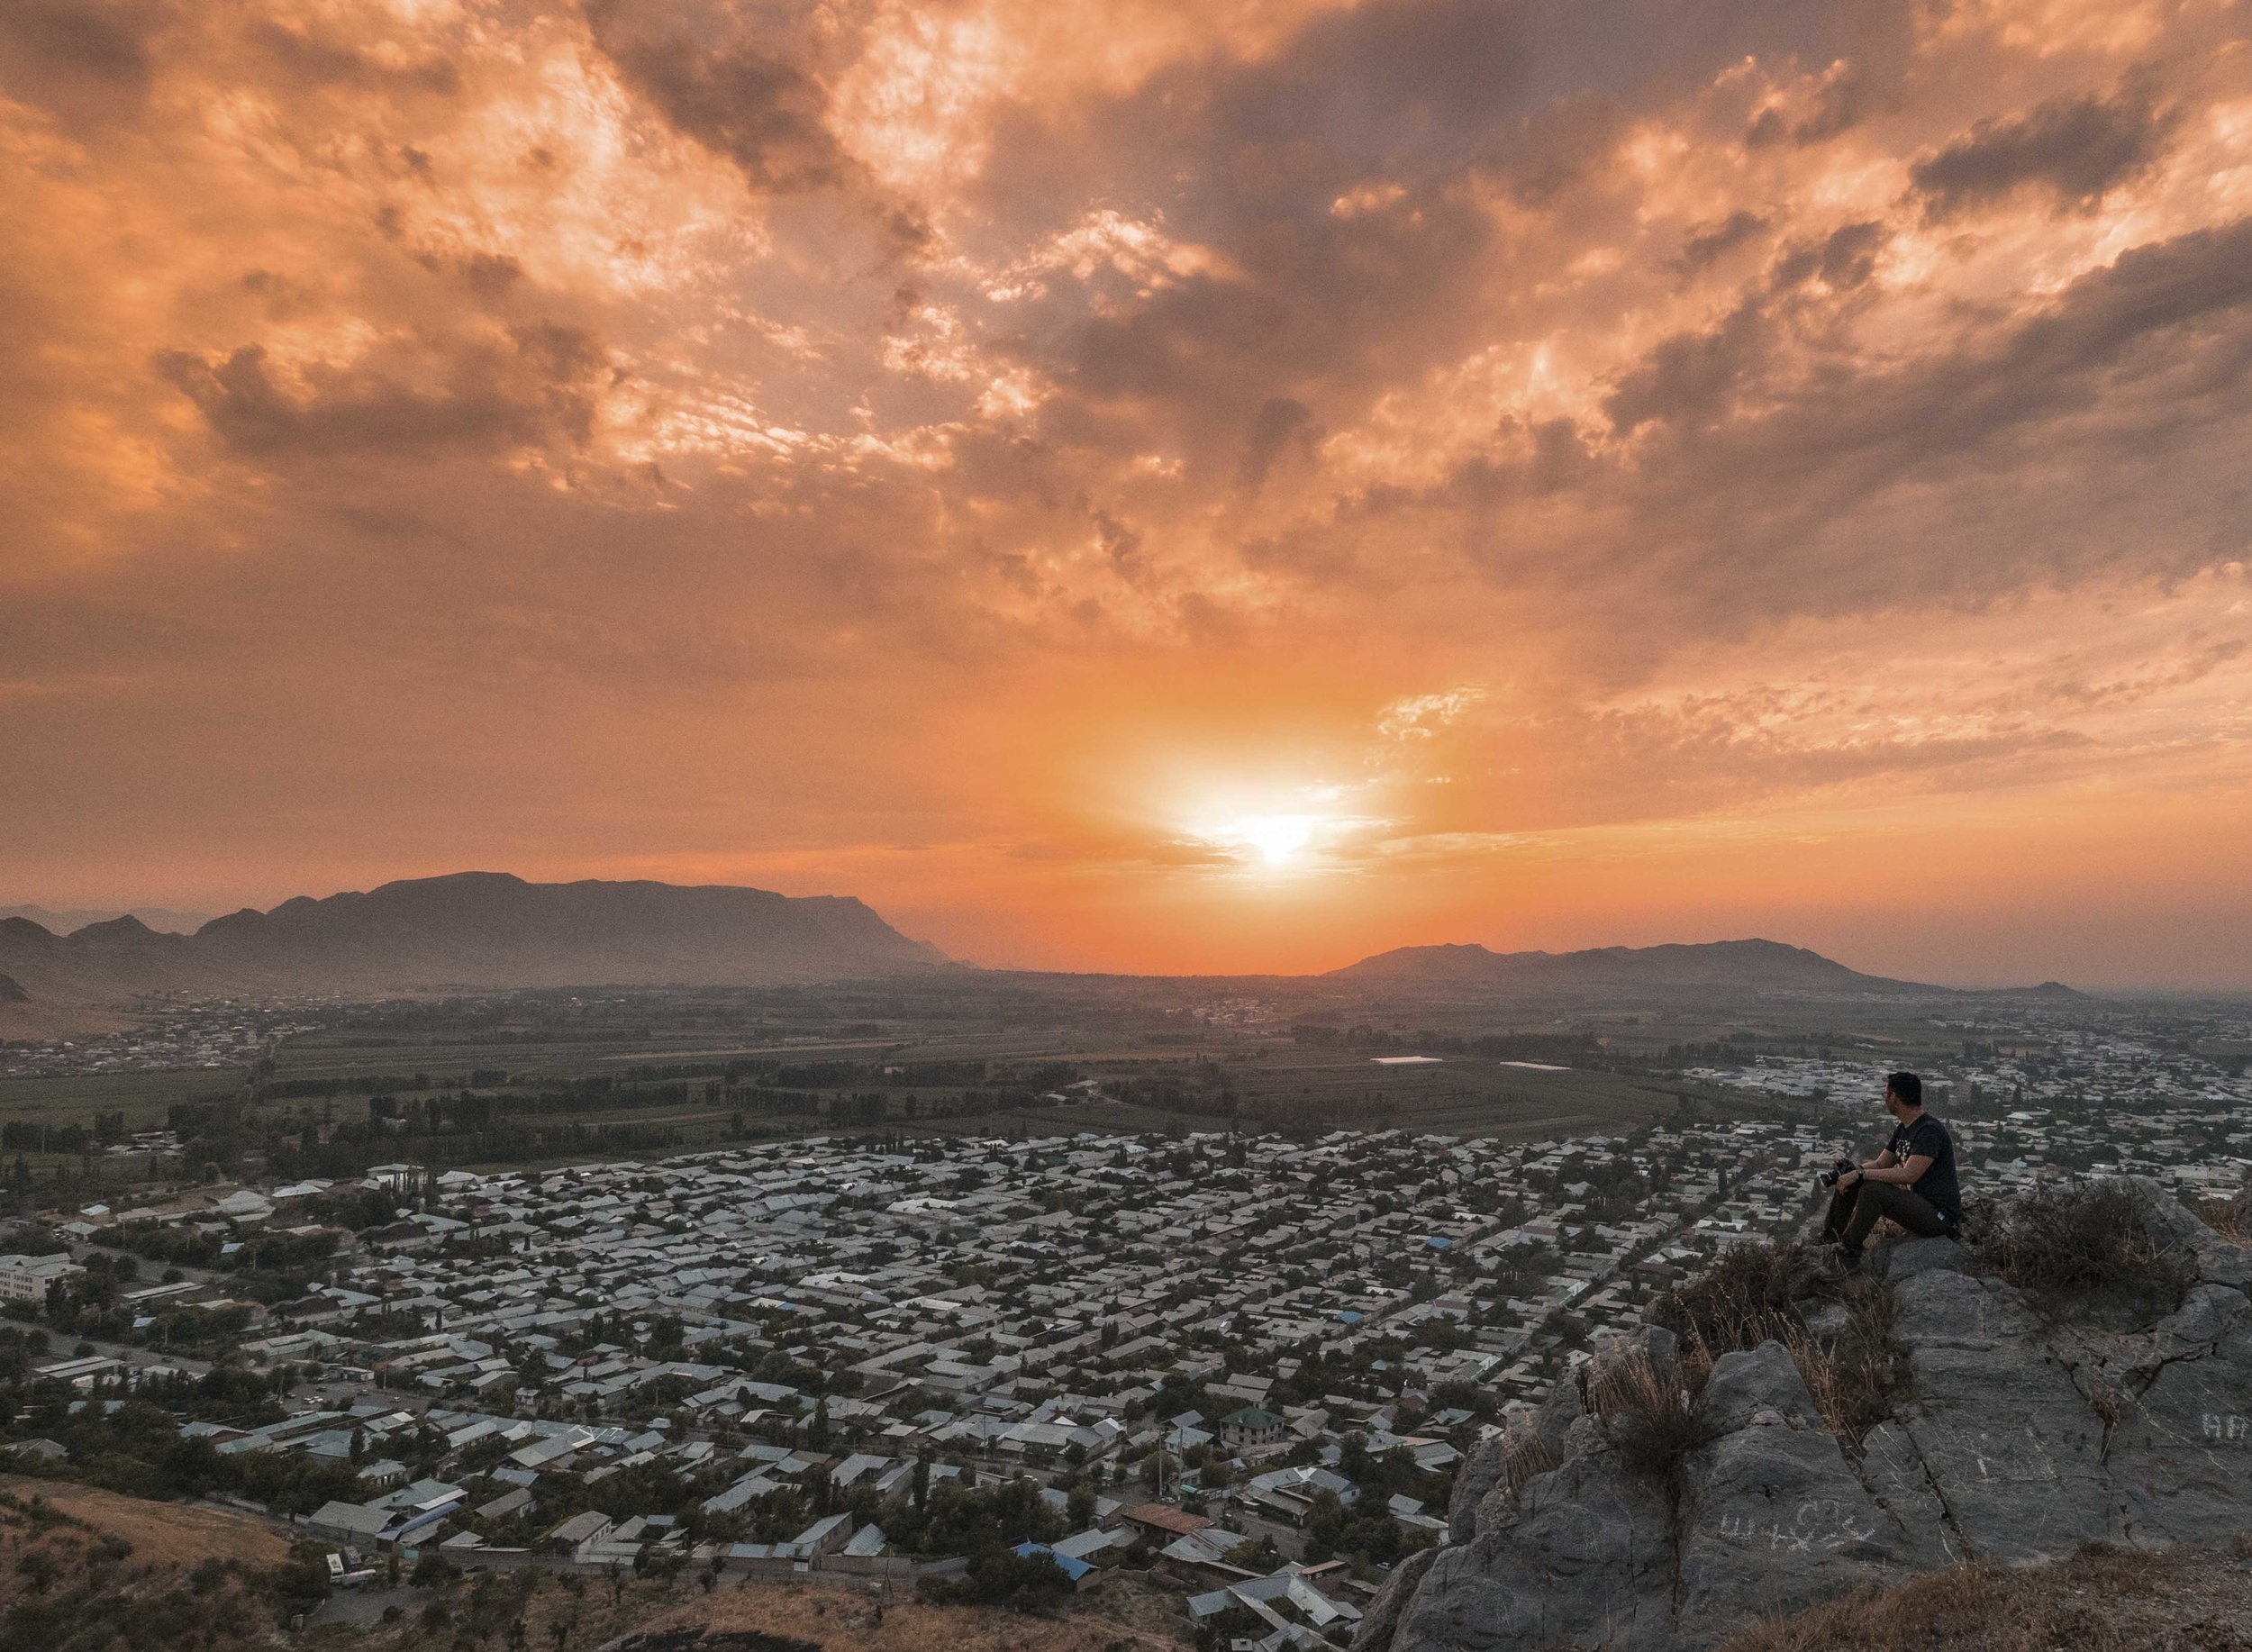 Watching the sunset in Sulaiman Too in Osh Kyrgyzstan. Photo: Kel Morales.